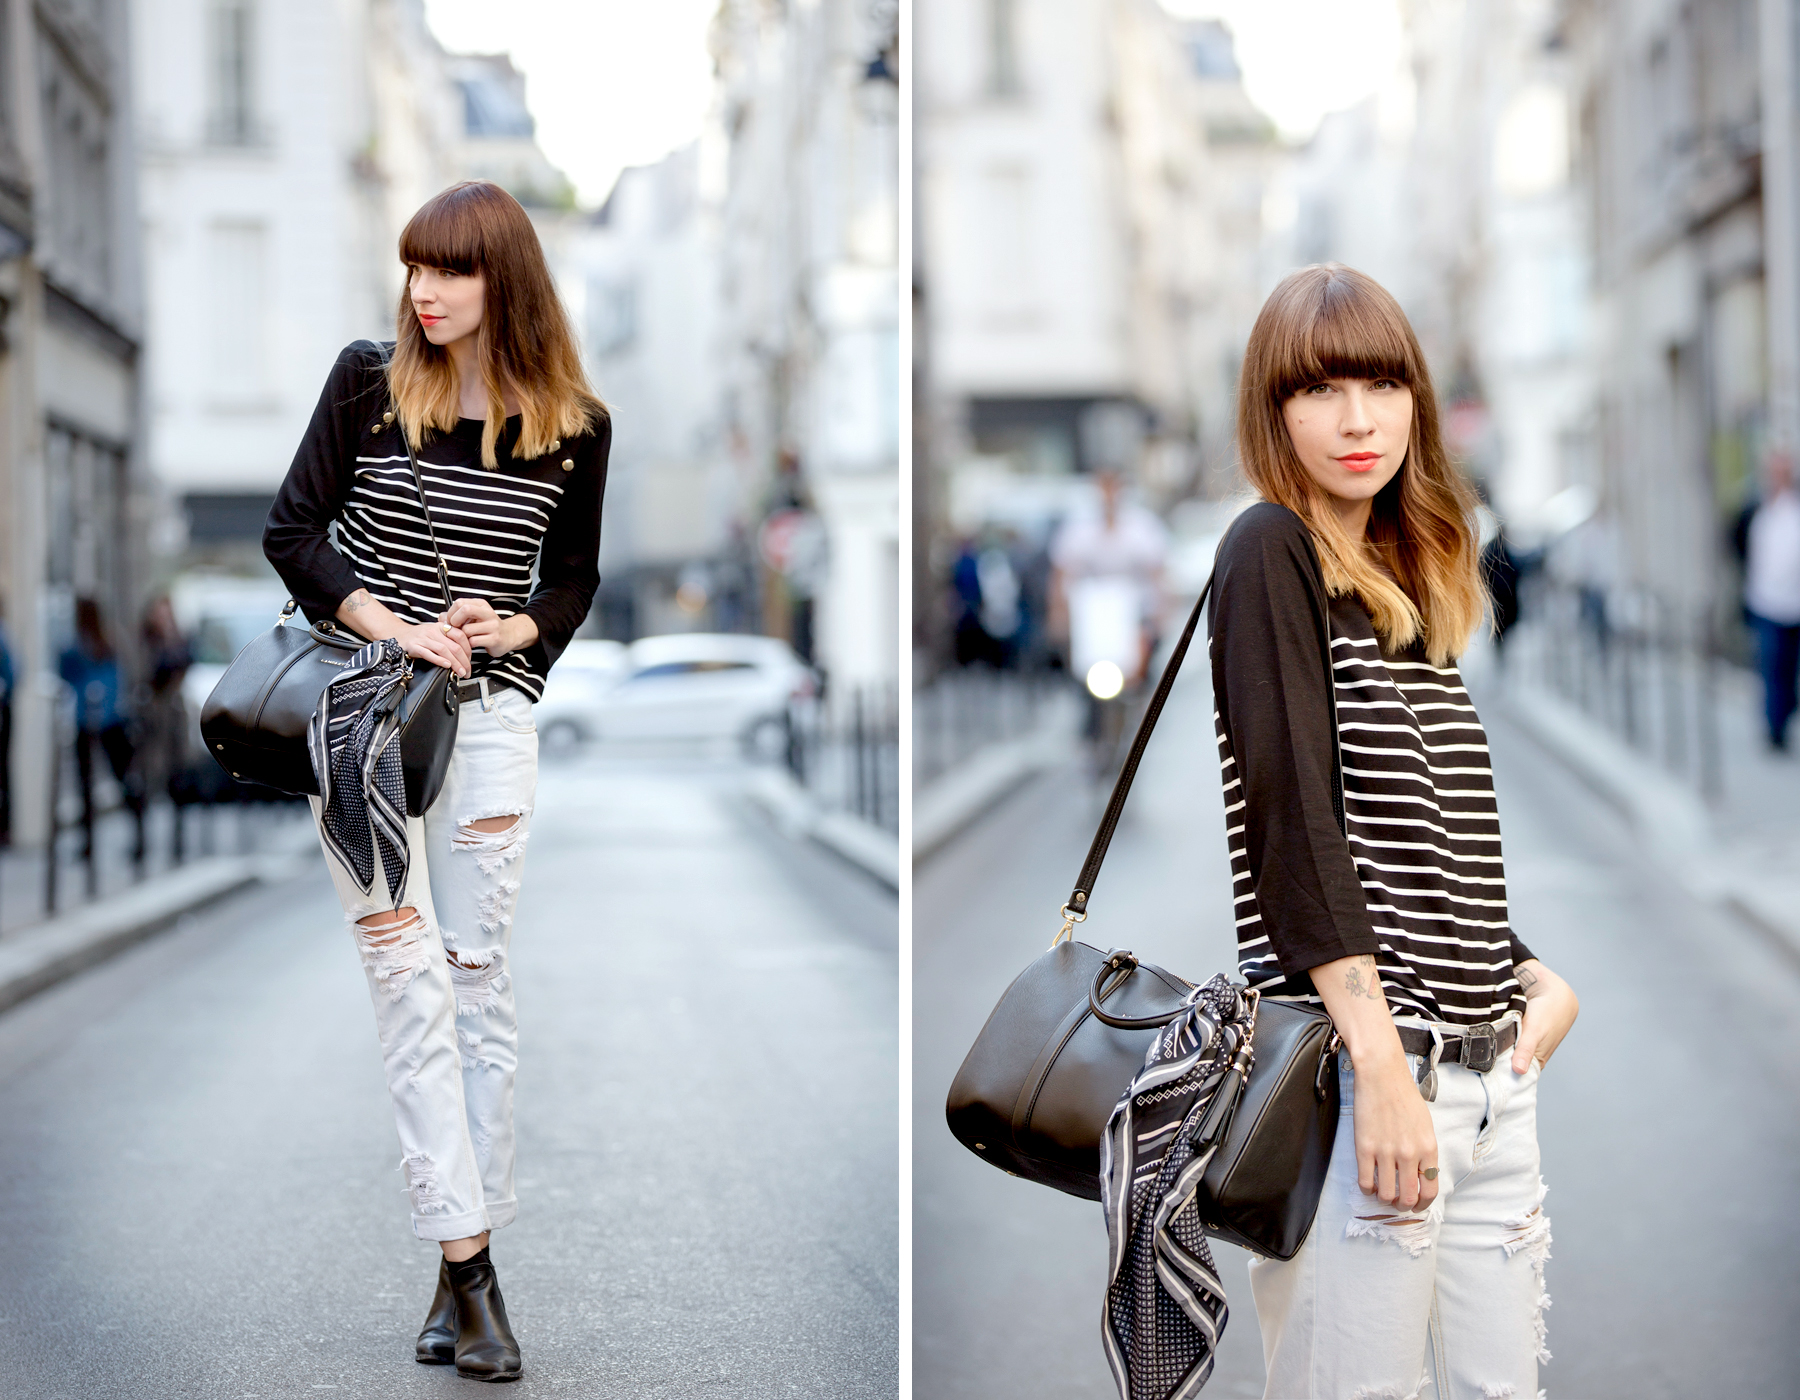 outfit ootd lancaster bag striped shirt paris fashionweek pfw le marais parisienne chic fashionblogger cats & dogs blog ricarda schernus 6